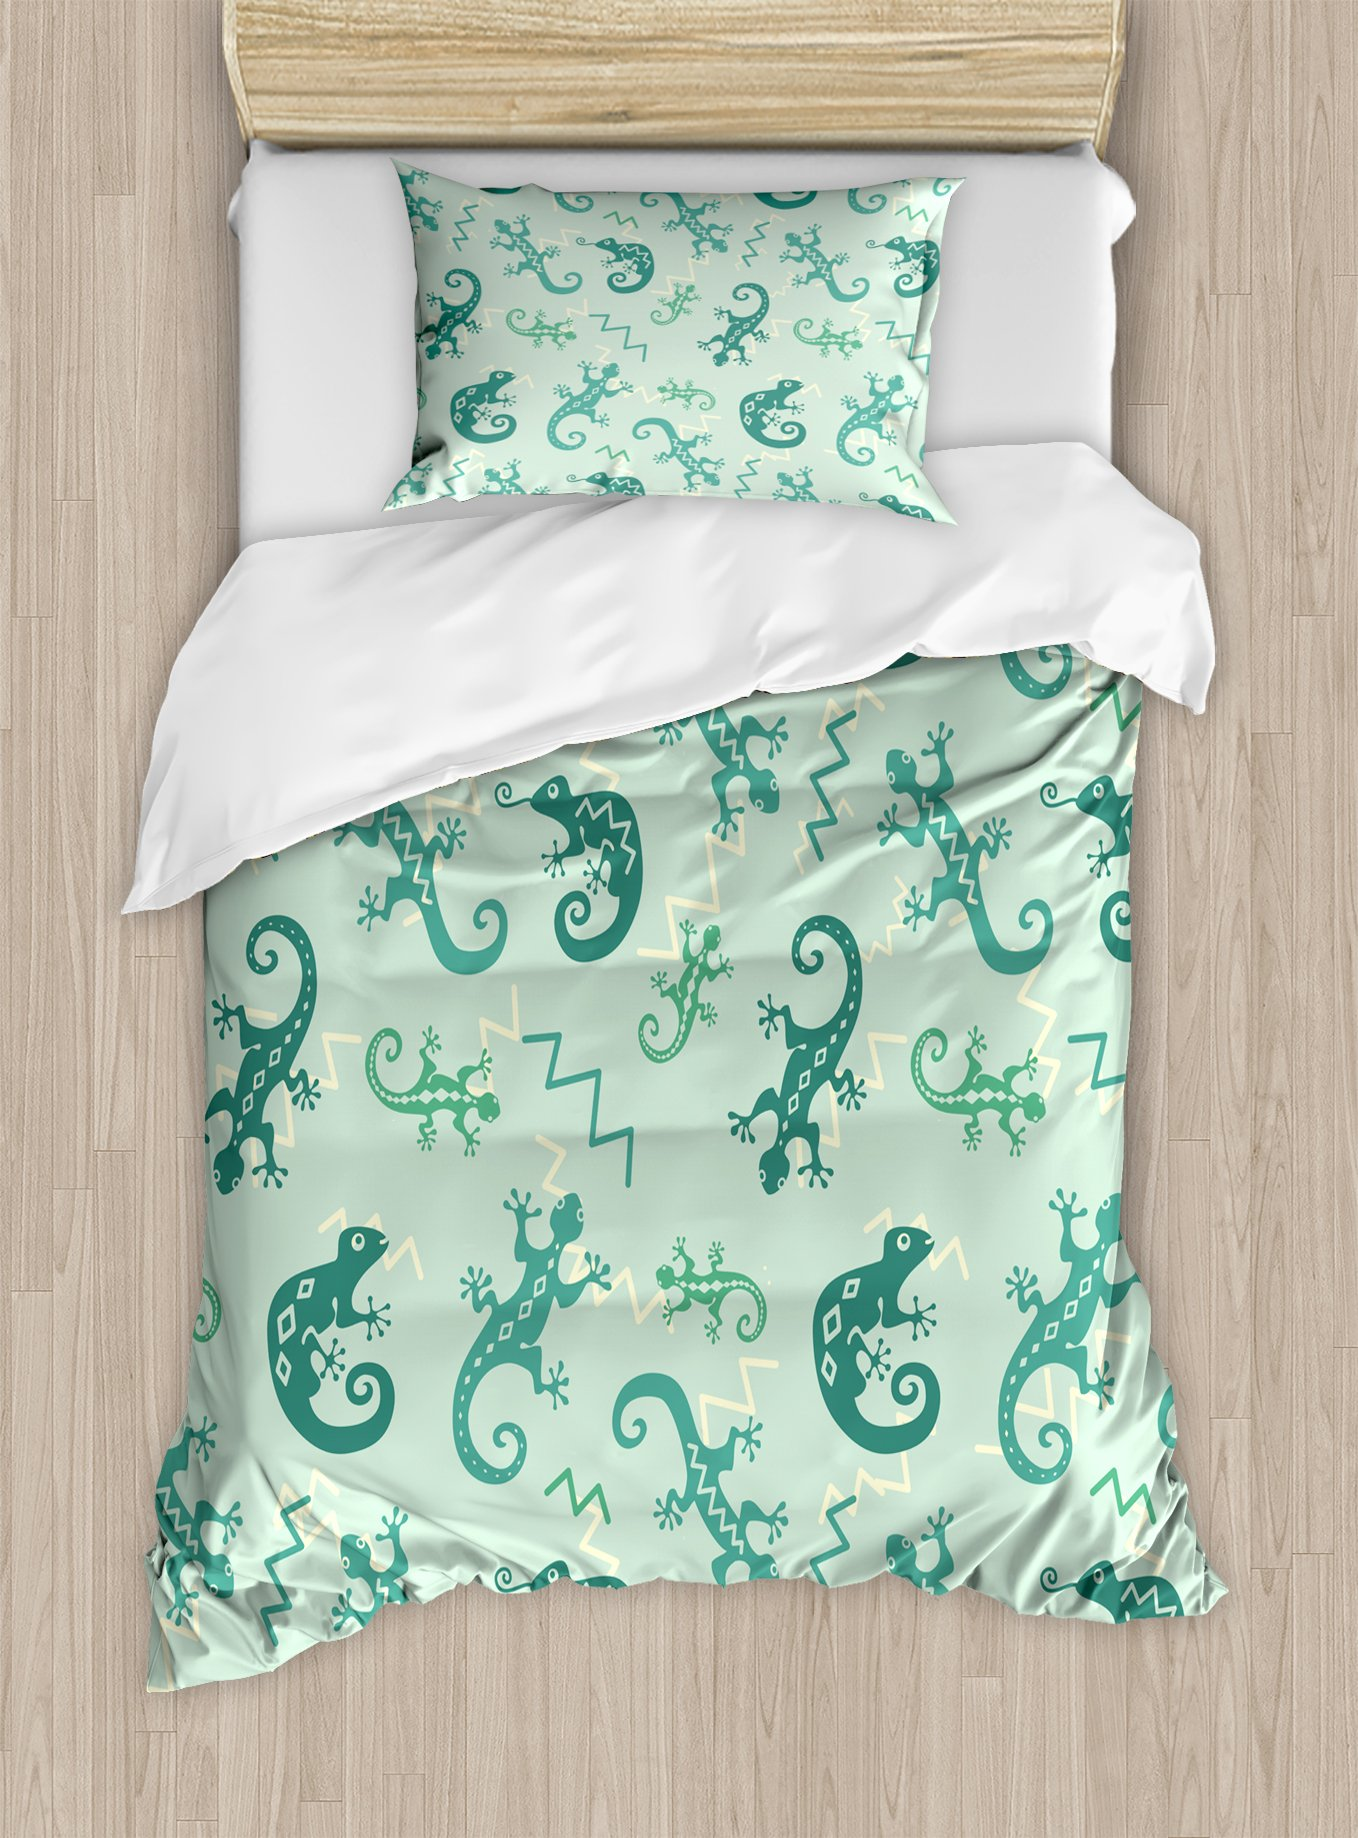 Ambesonne Reptile Duvet Cover Set Twin Size, African Exotic Lizards Chameleons Leaping Illustration Nature Reptiles Kids Nursery, Decorative 2 Piece Bedding Set with 1 Pillow Sham, Green Mint